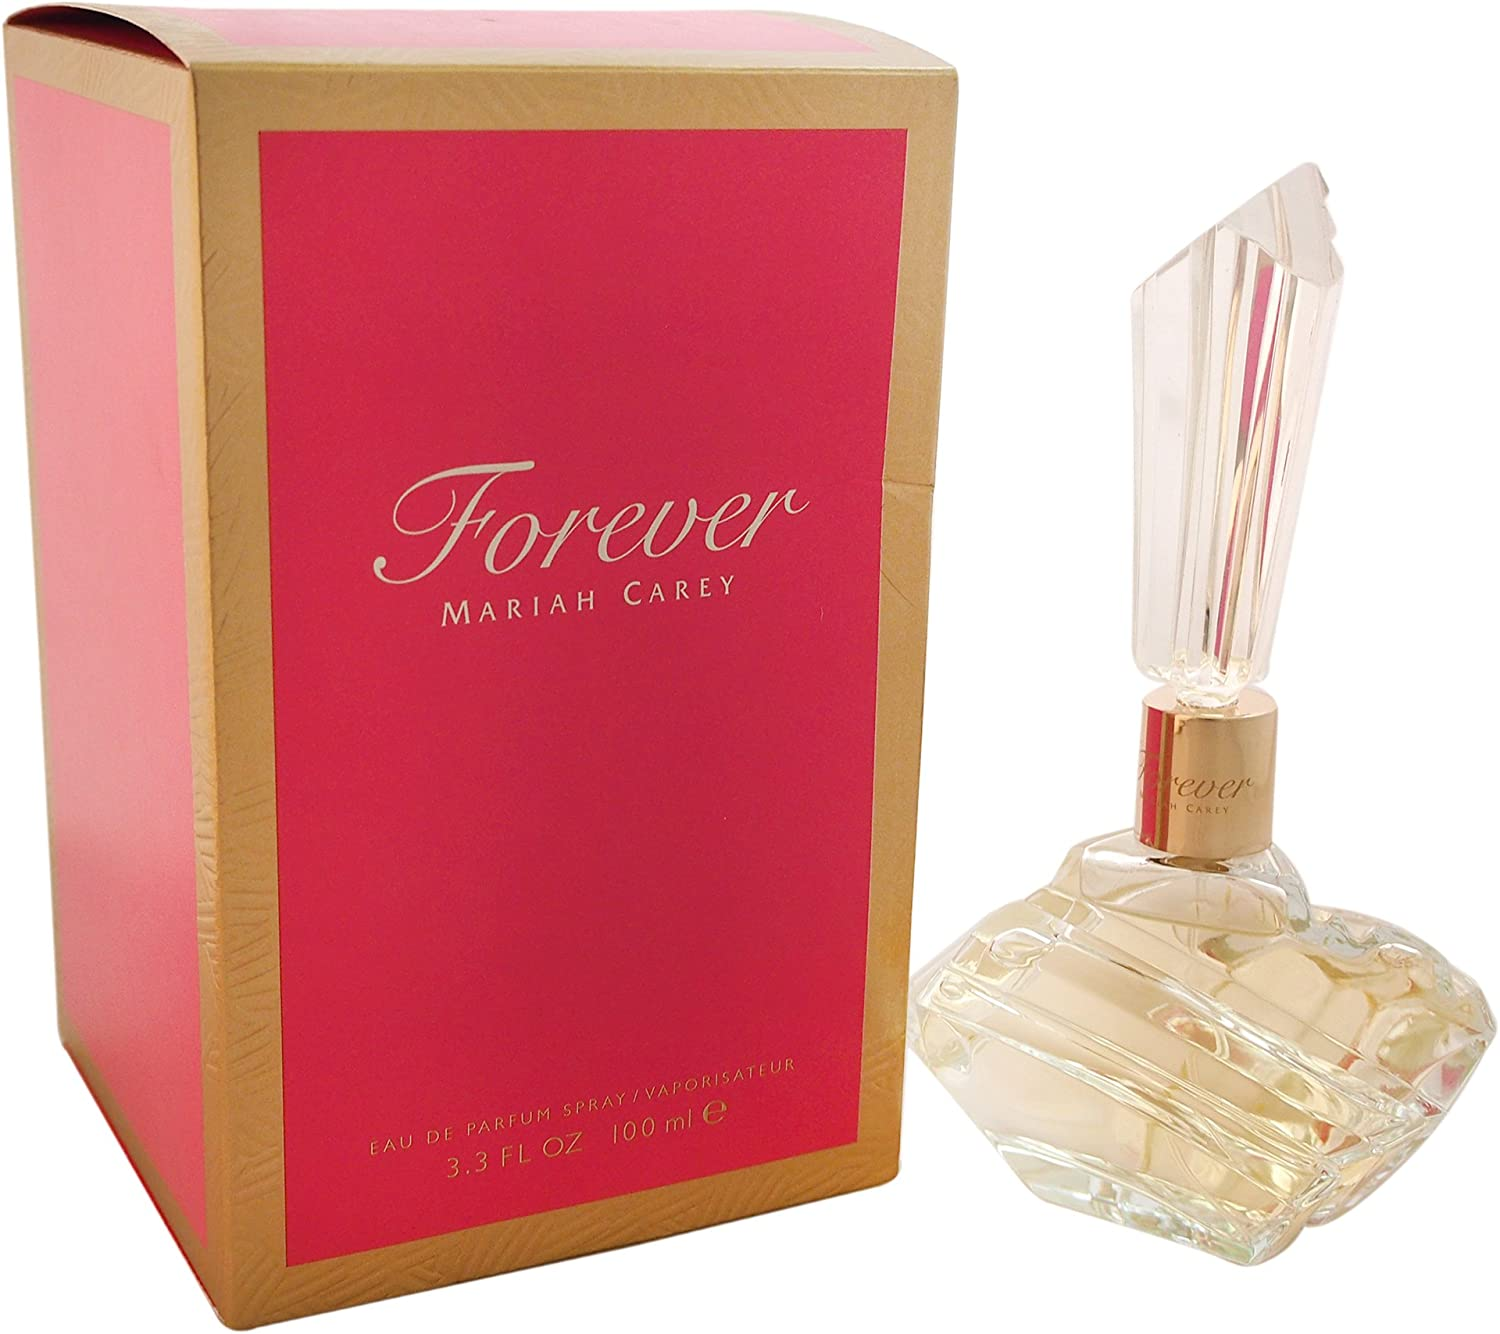 MARIAH CAREY FOREVER by Mariah Carey Perfume for Women (EAU DE PARFUM SPRAY 3.4 OZ) by Mariah Carey